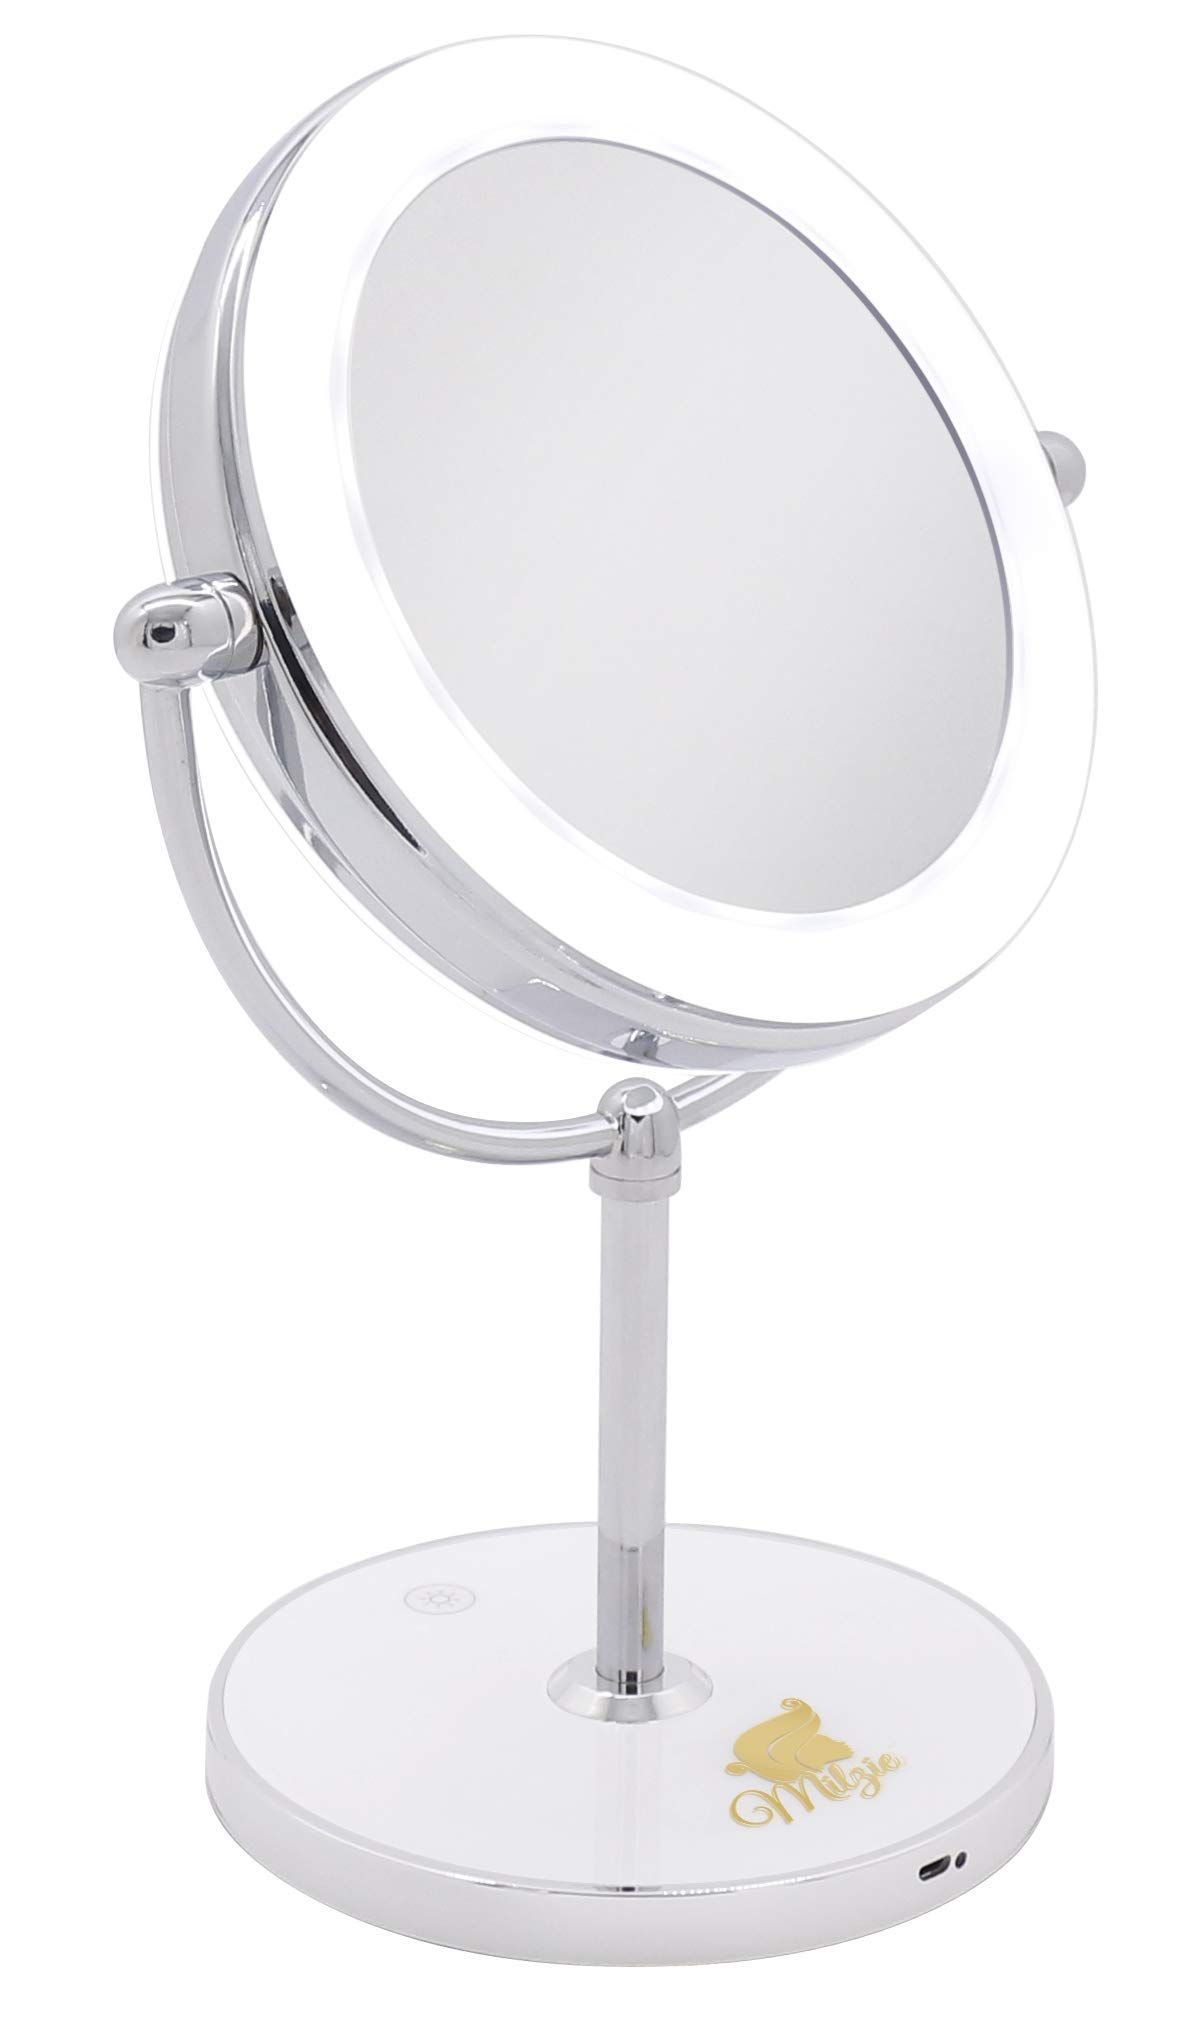 Milzie Portable Double Sided Van Makeup Mirror With Lights Makeup Mirror White Led Lights